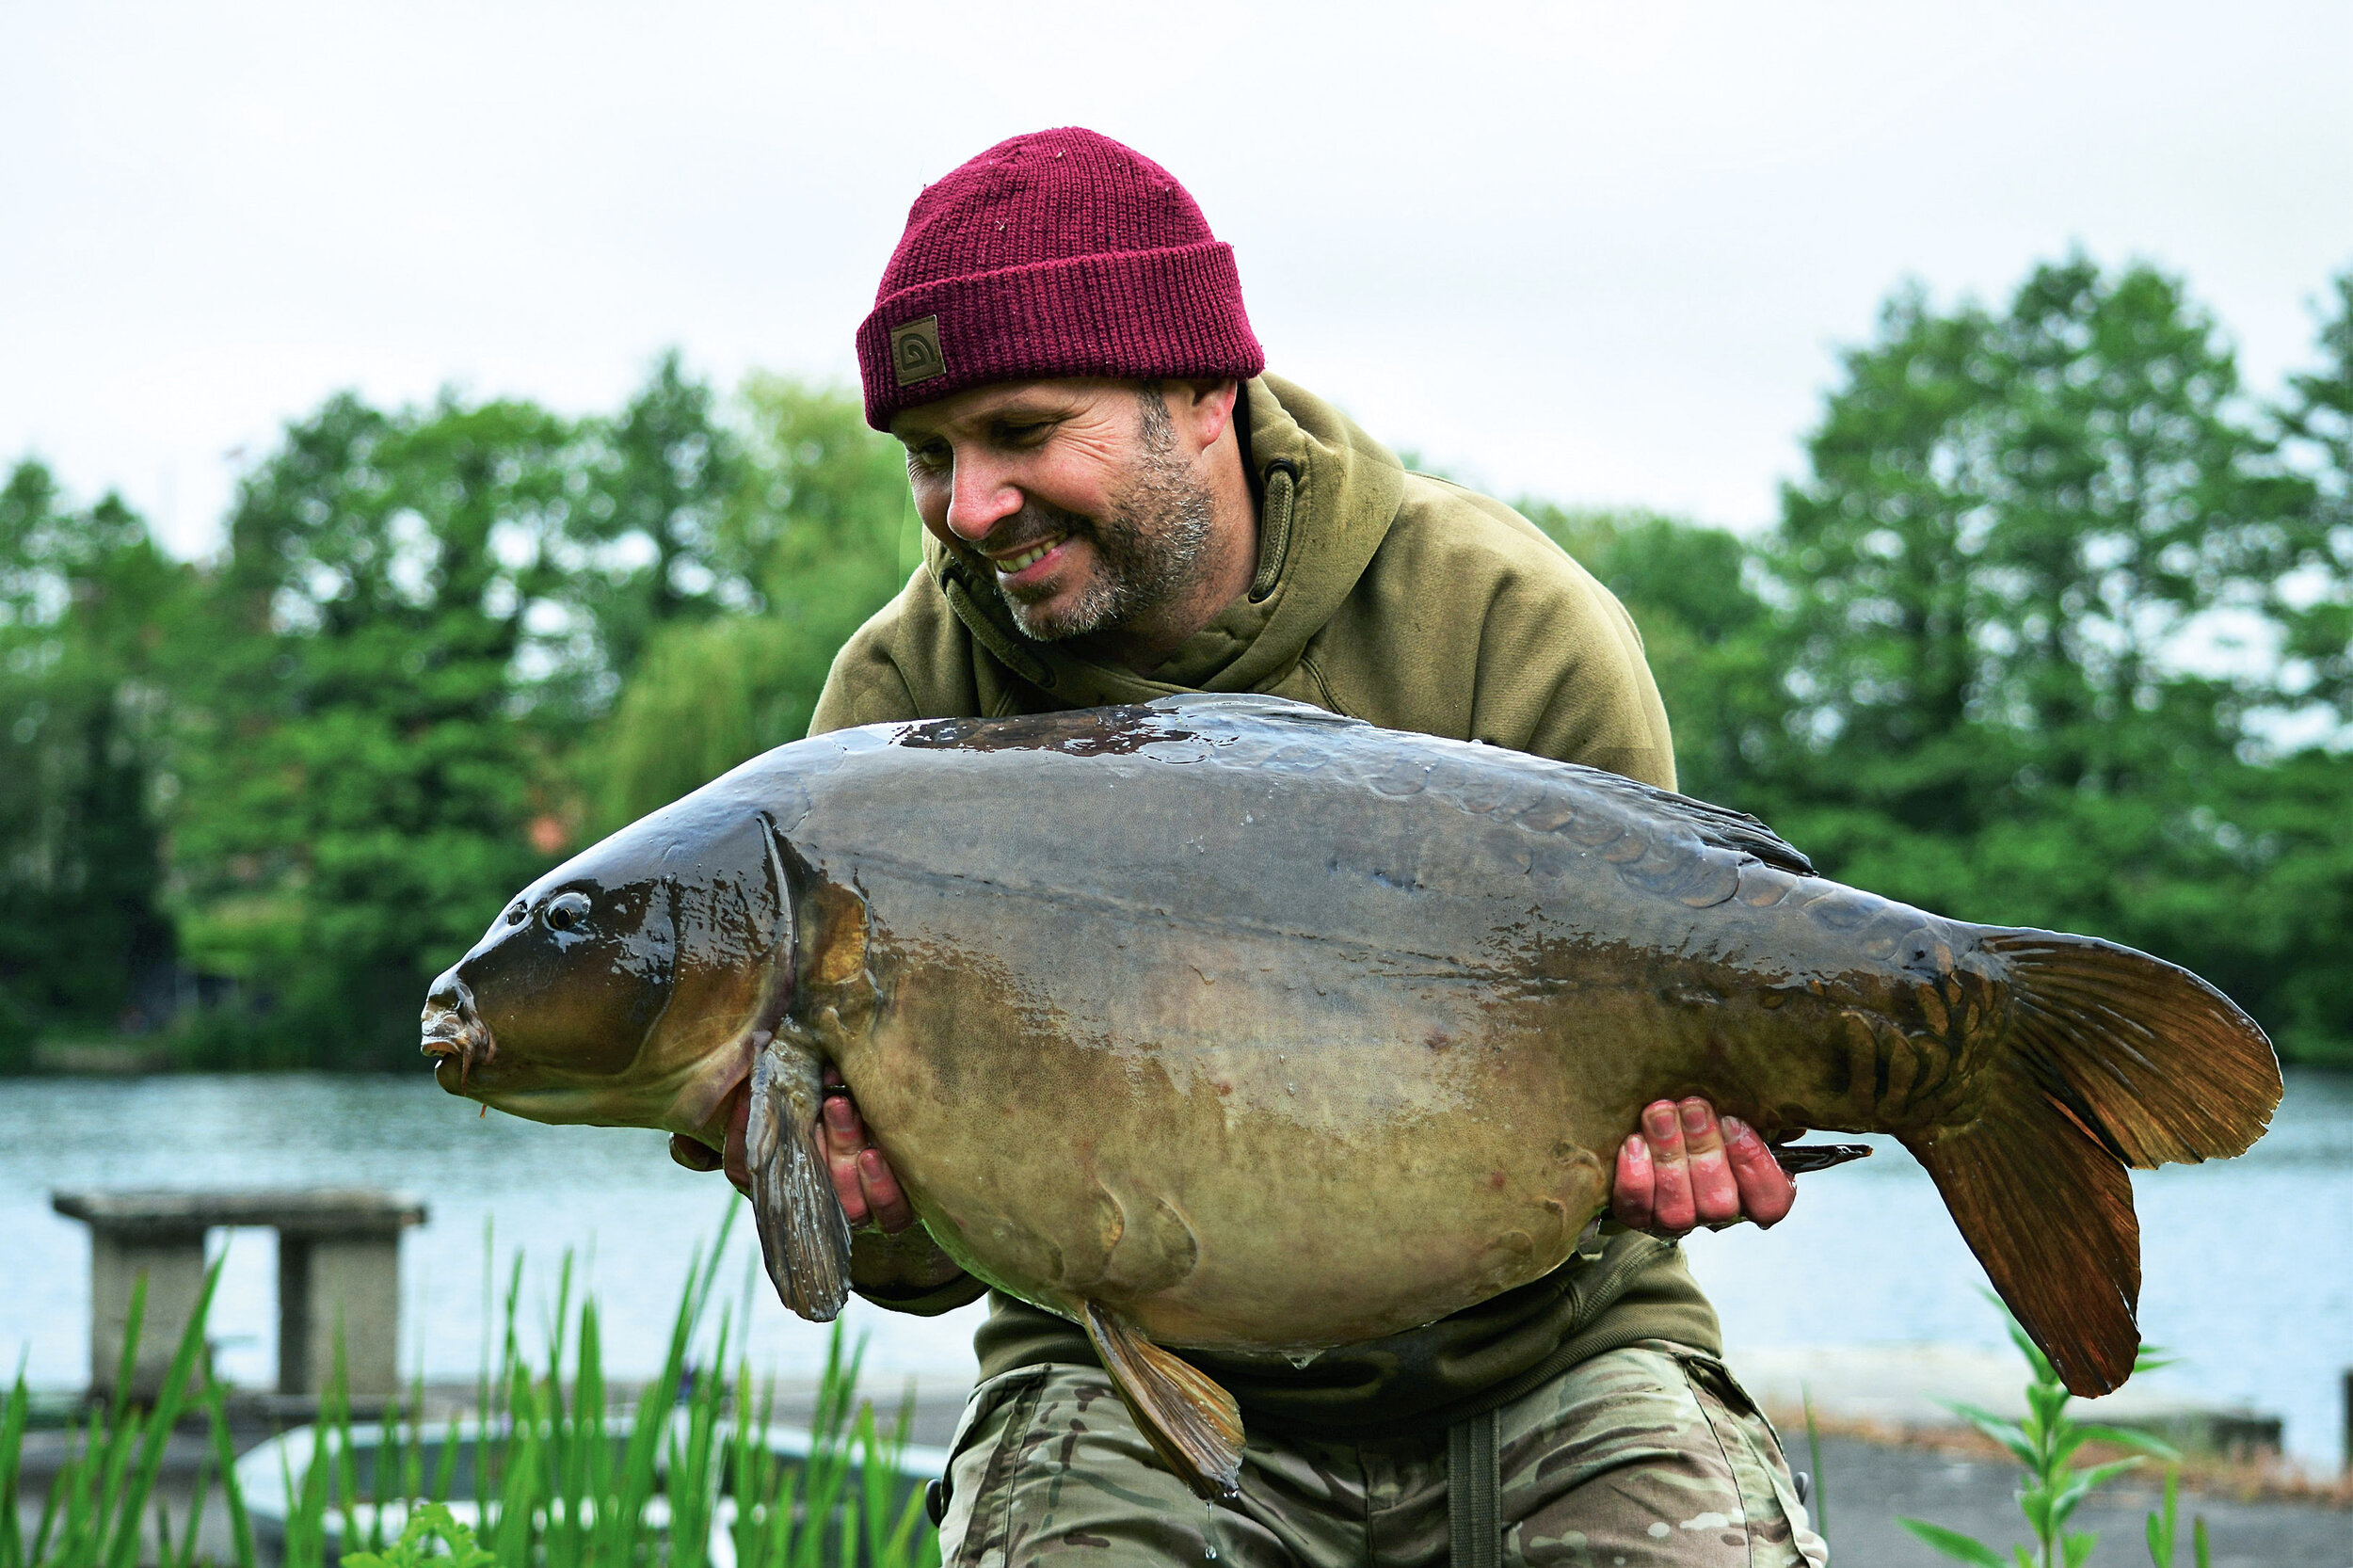 A superb 40-pounder caught on Dave's Chod Rig following a sighting in a similar situation to the one he described